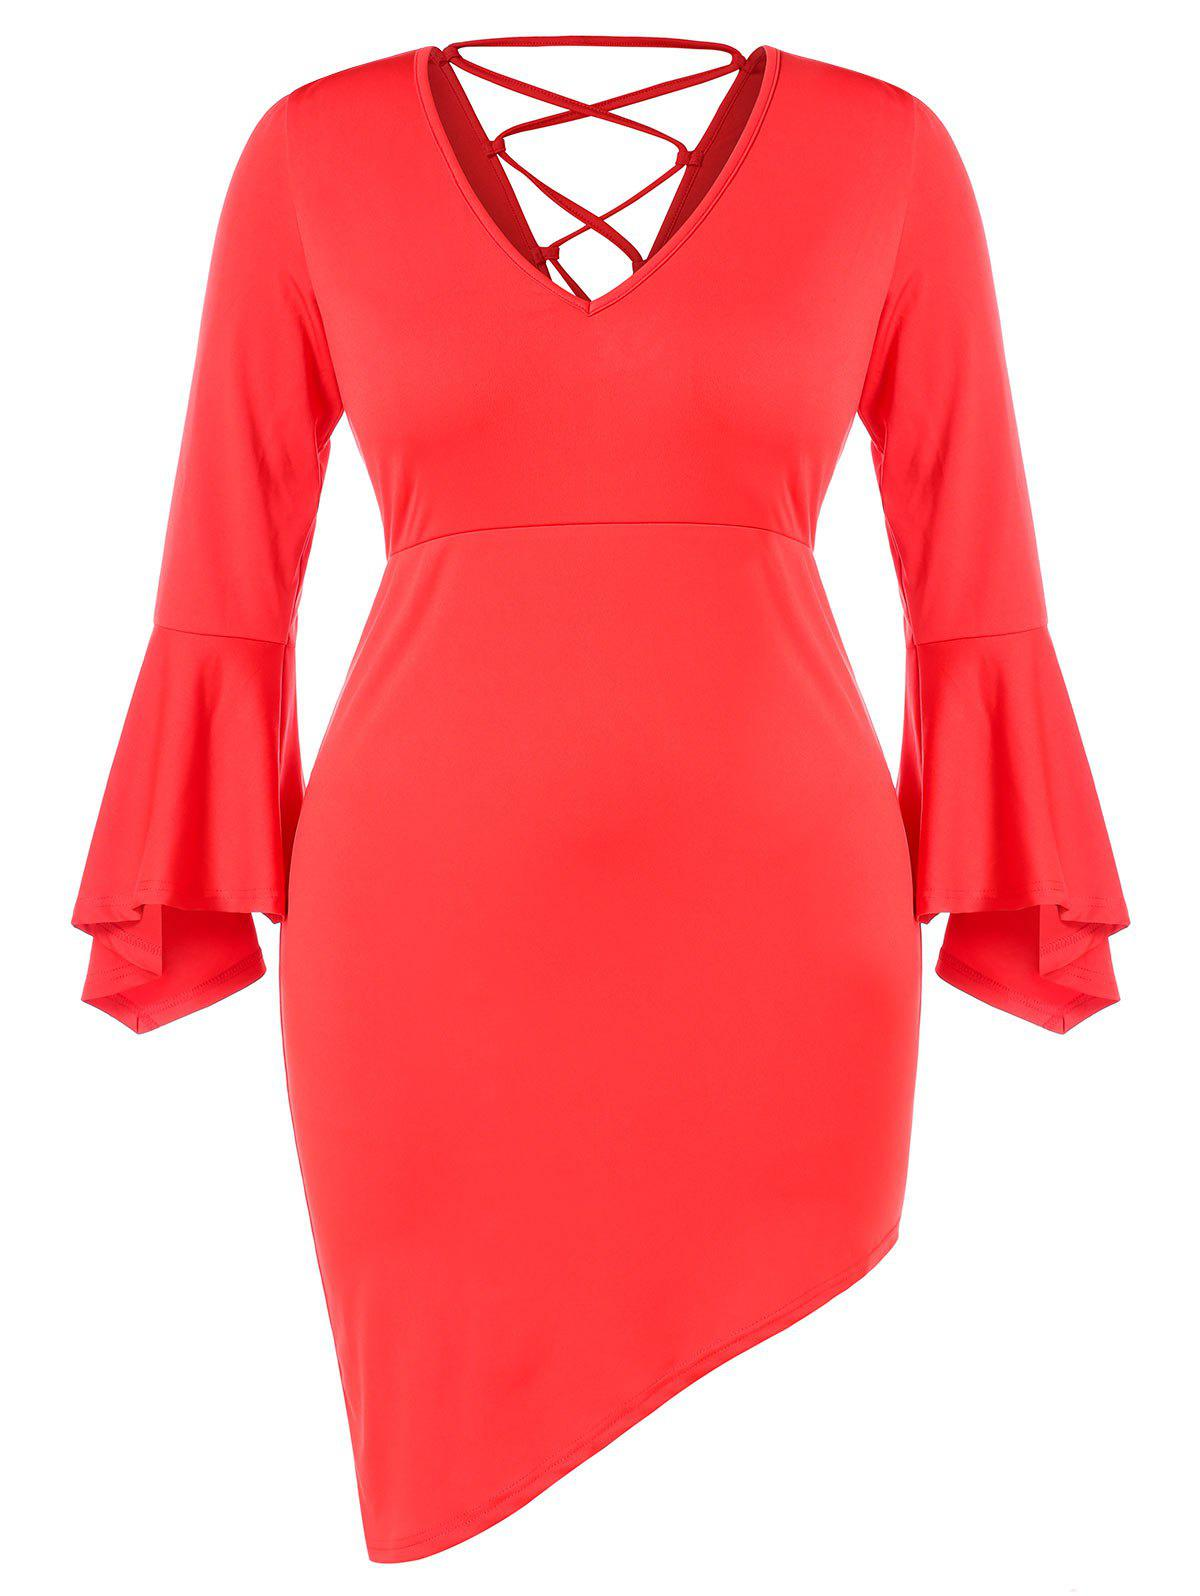 Plus Size V Neck Lace Up Bell Sleeves Asymmetric Dress - LOVE RED L